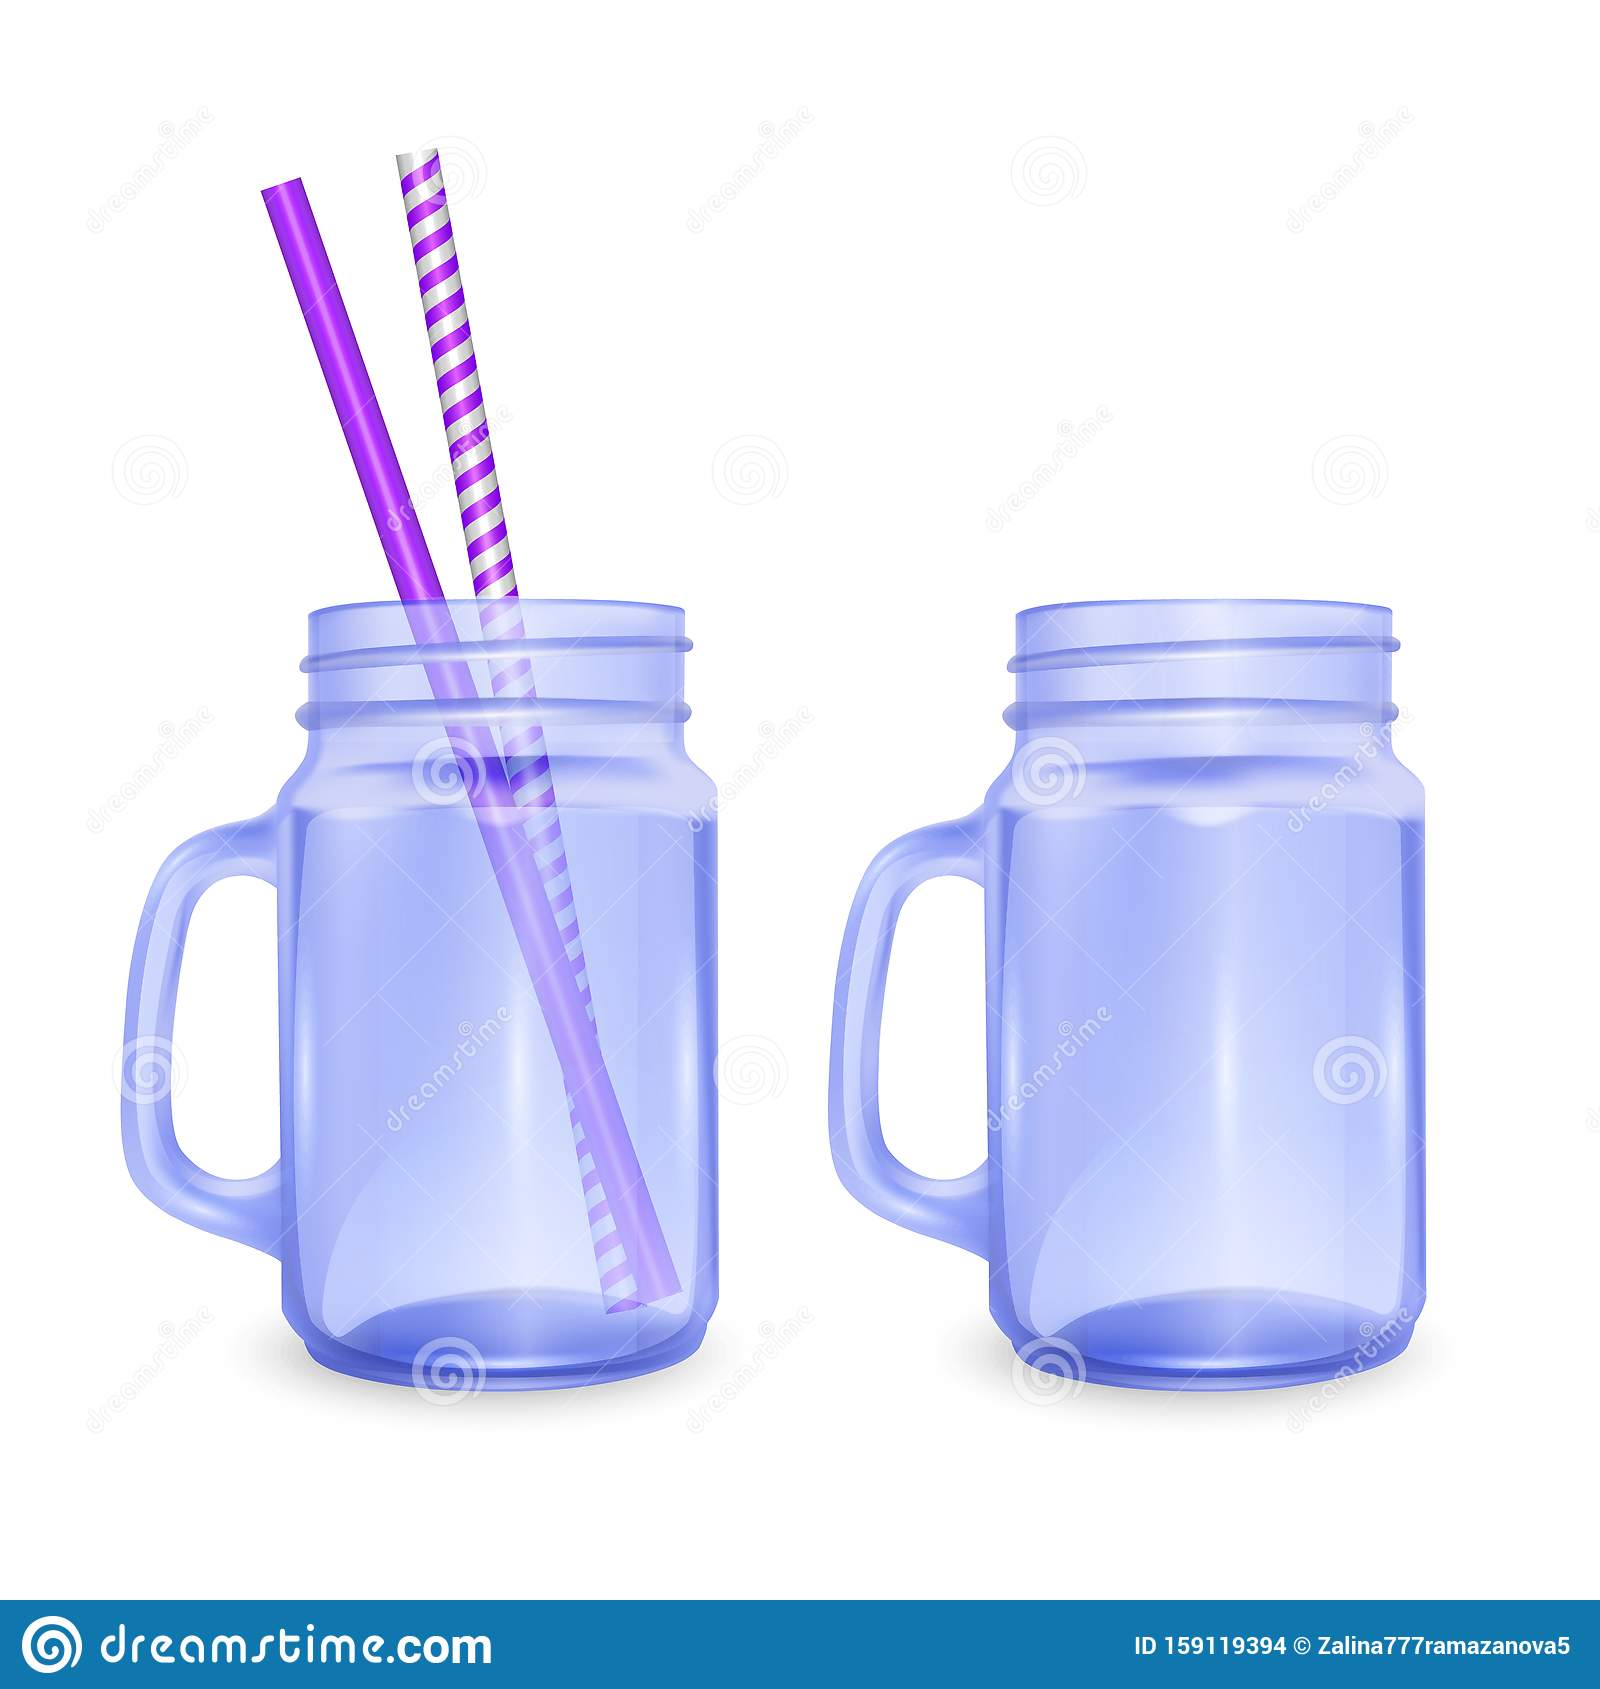 Empty jar for smoothies with striped straw for cocktails isolated on white background for advertising your products drinks in